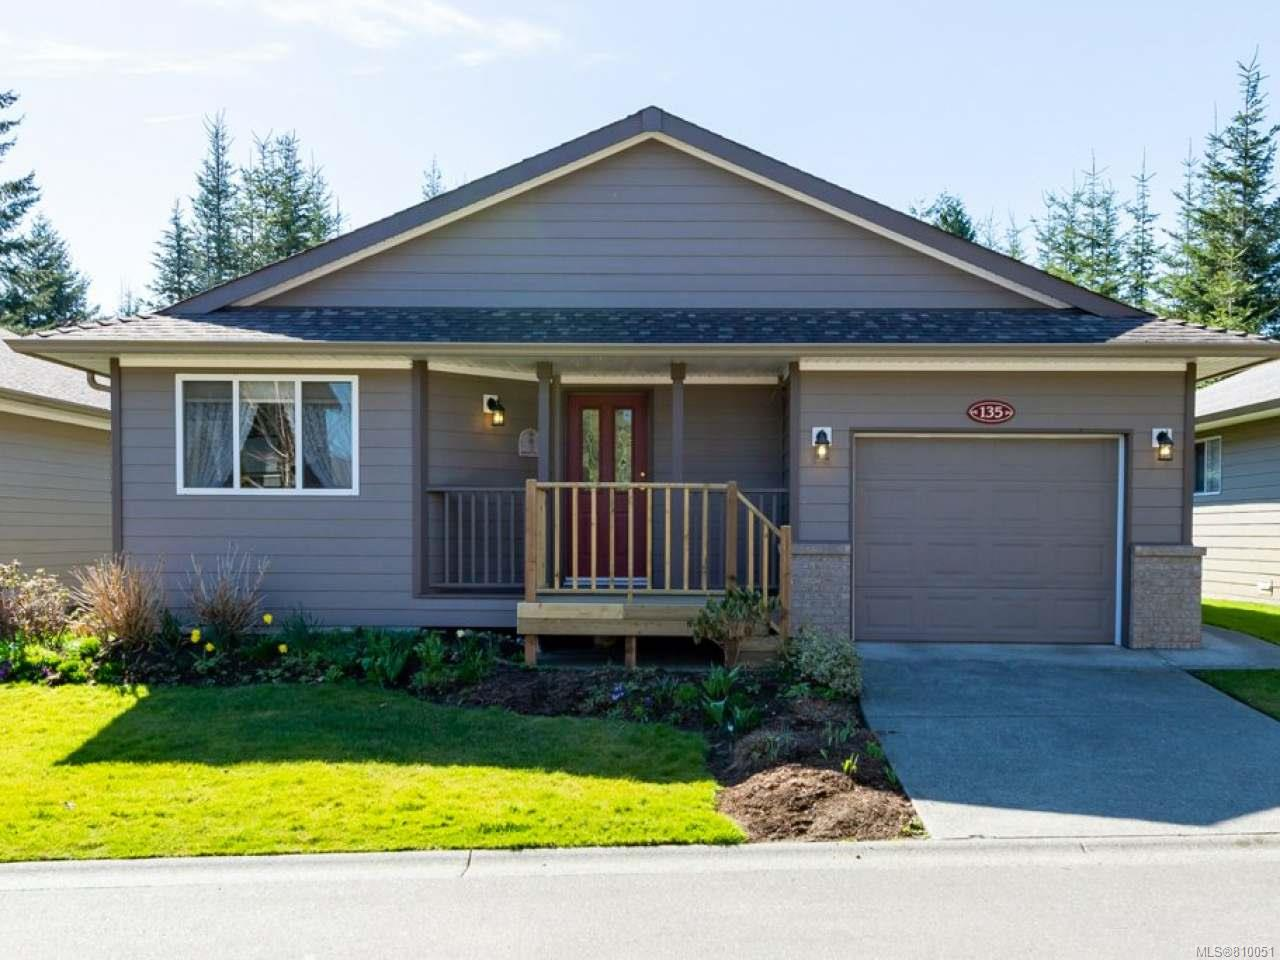 FEATURED LISTING: 135 Cherry Tree Lane CAMPBELL RIVER